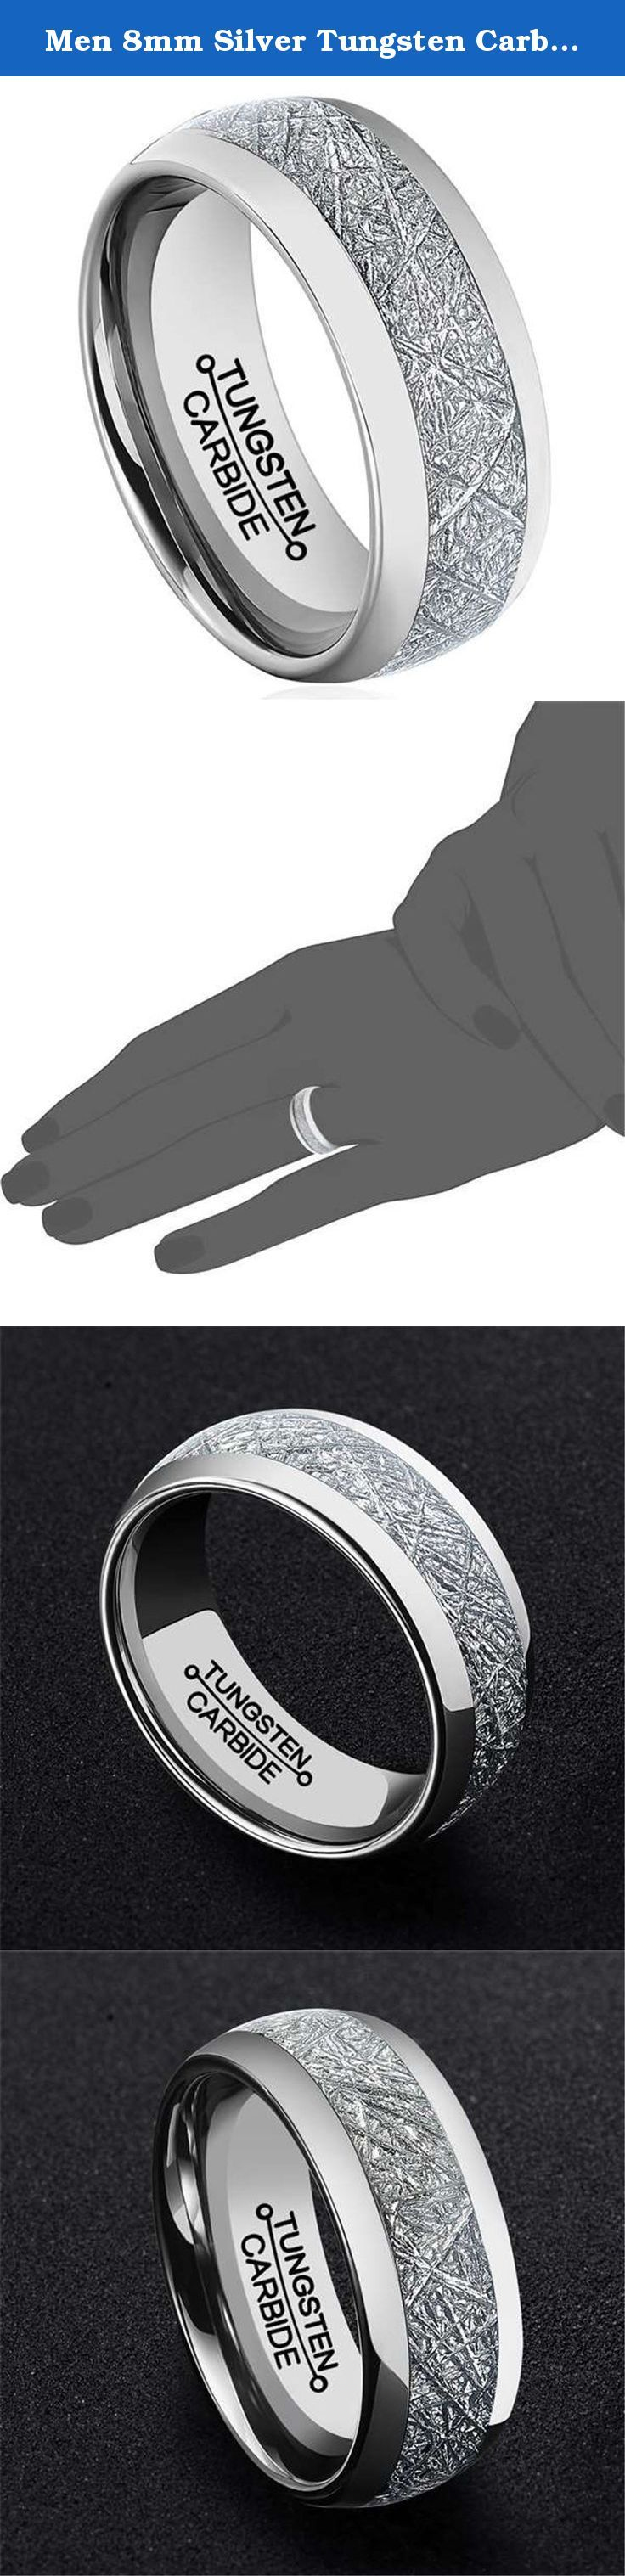 Men 8mm Silver Tungsten Carbide Ring Vintage Meteorites Pattern Wedding Engagement Band Domed Comfort Fit Size 9.5. As a heavy metal, tungsten carbide is a very hard and dense with hardness between 8.5 and 9.5 on the hardness scale (Diamonds come to a 10). Its density allows tungsten to be used in jewelry as an alternative to gold or platinum. Tungsten carbide is about 10 times harder than 18k Gold, 4 times harder than titanium stainless steel, and it never fade, deform and always keep...